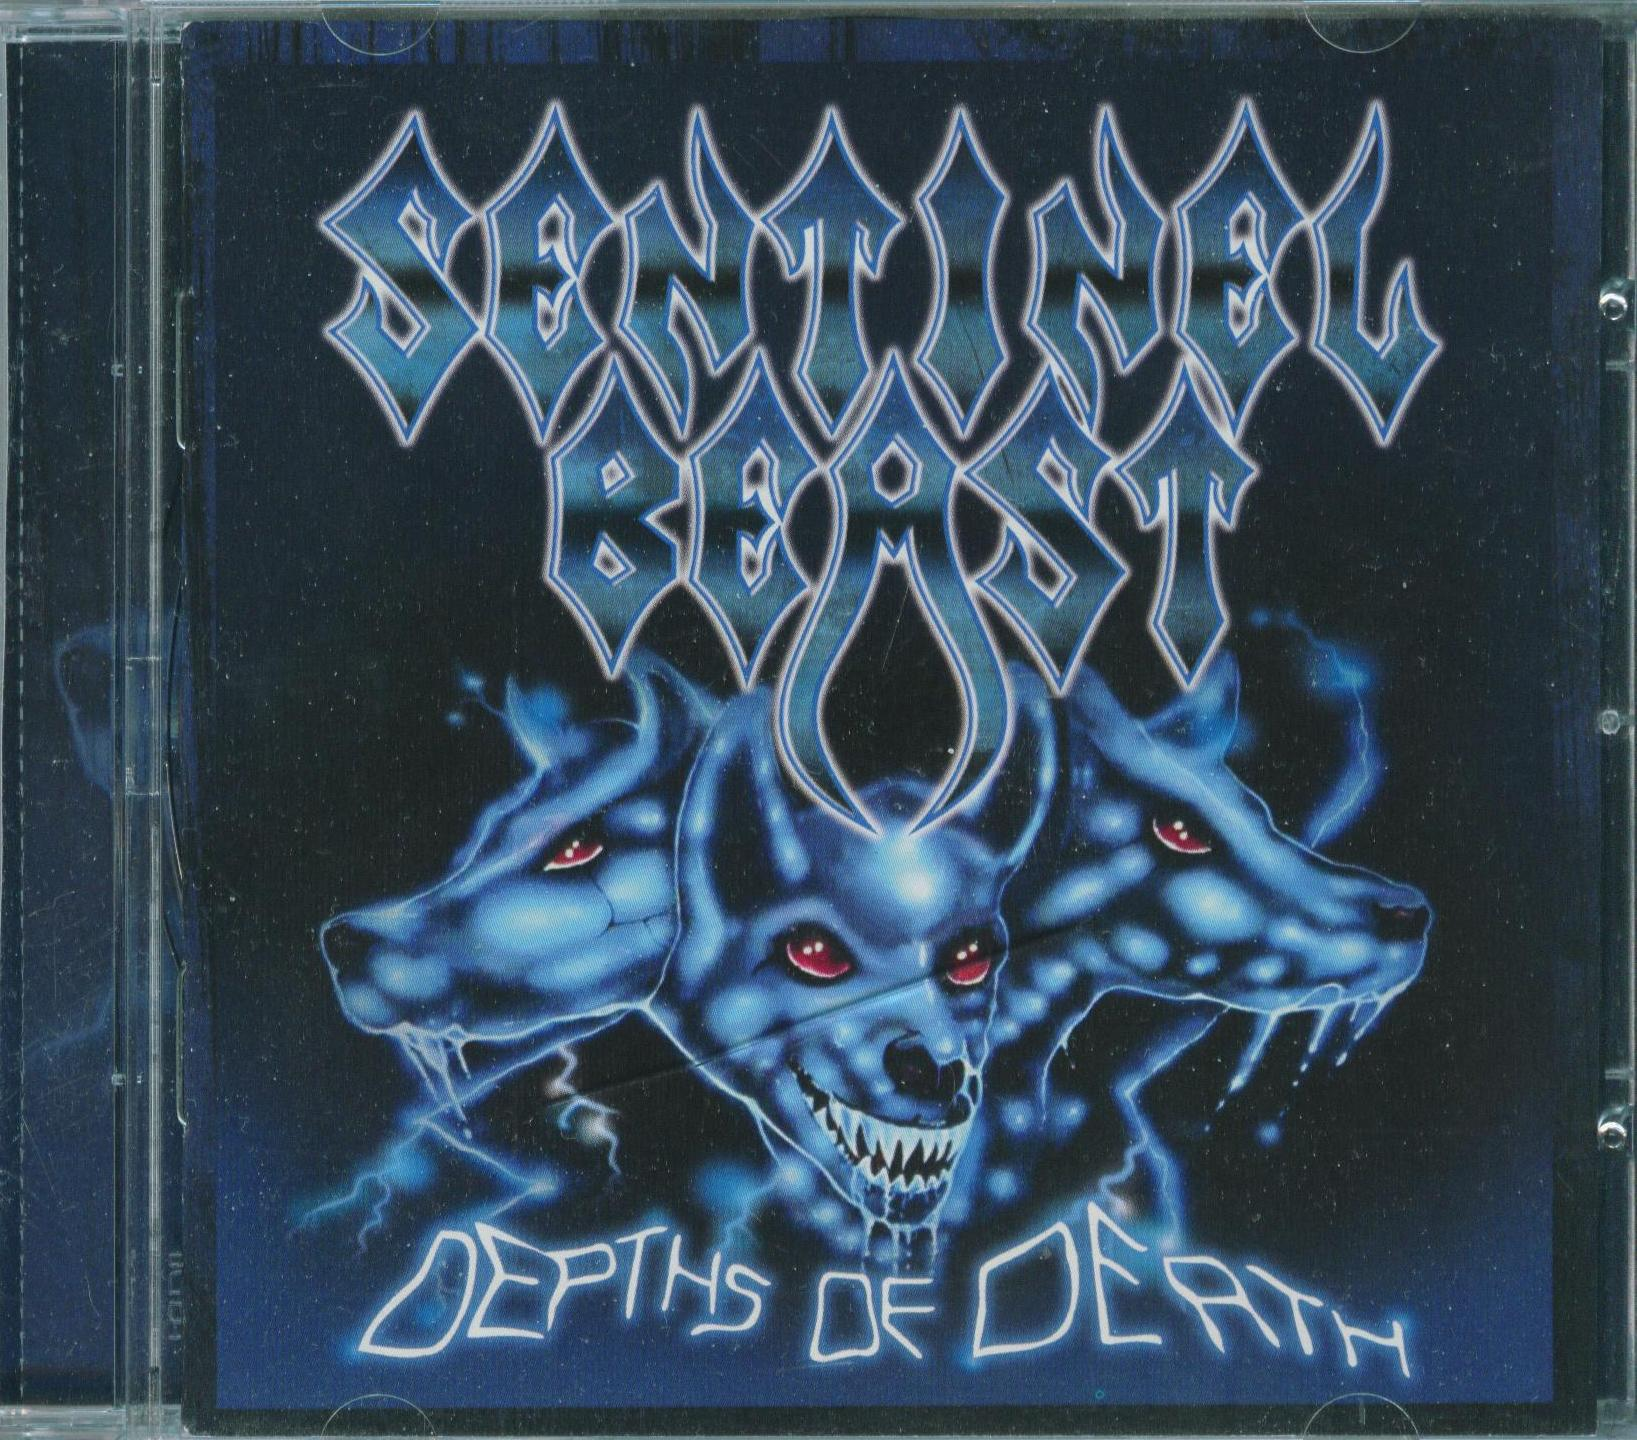 Sentinel Beast - Depths Of Death - 1986